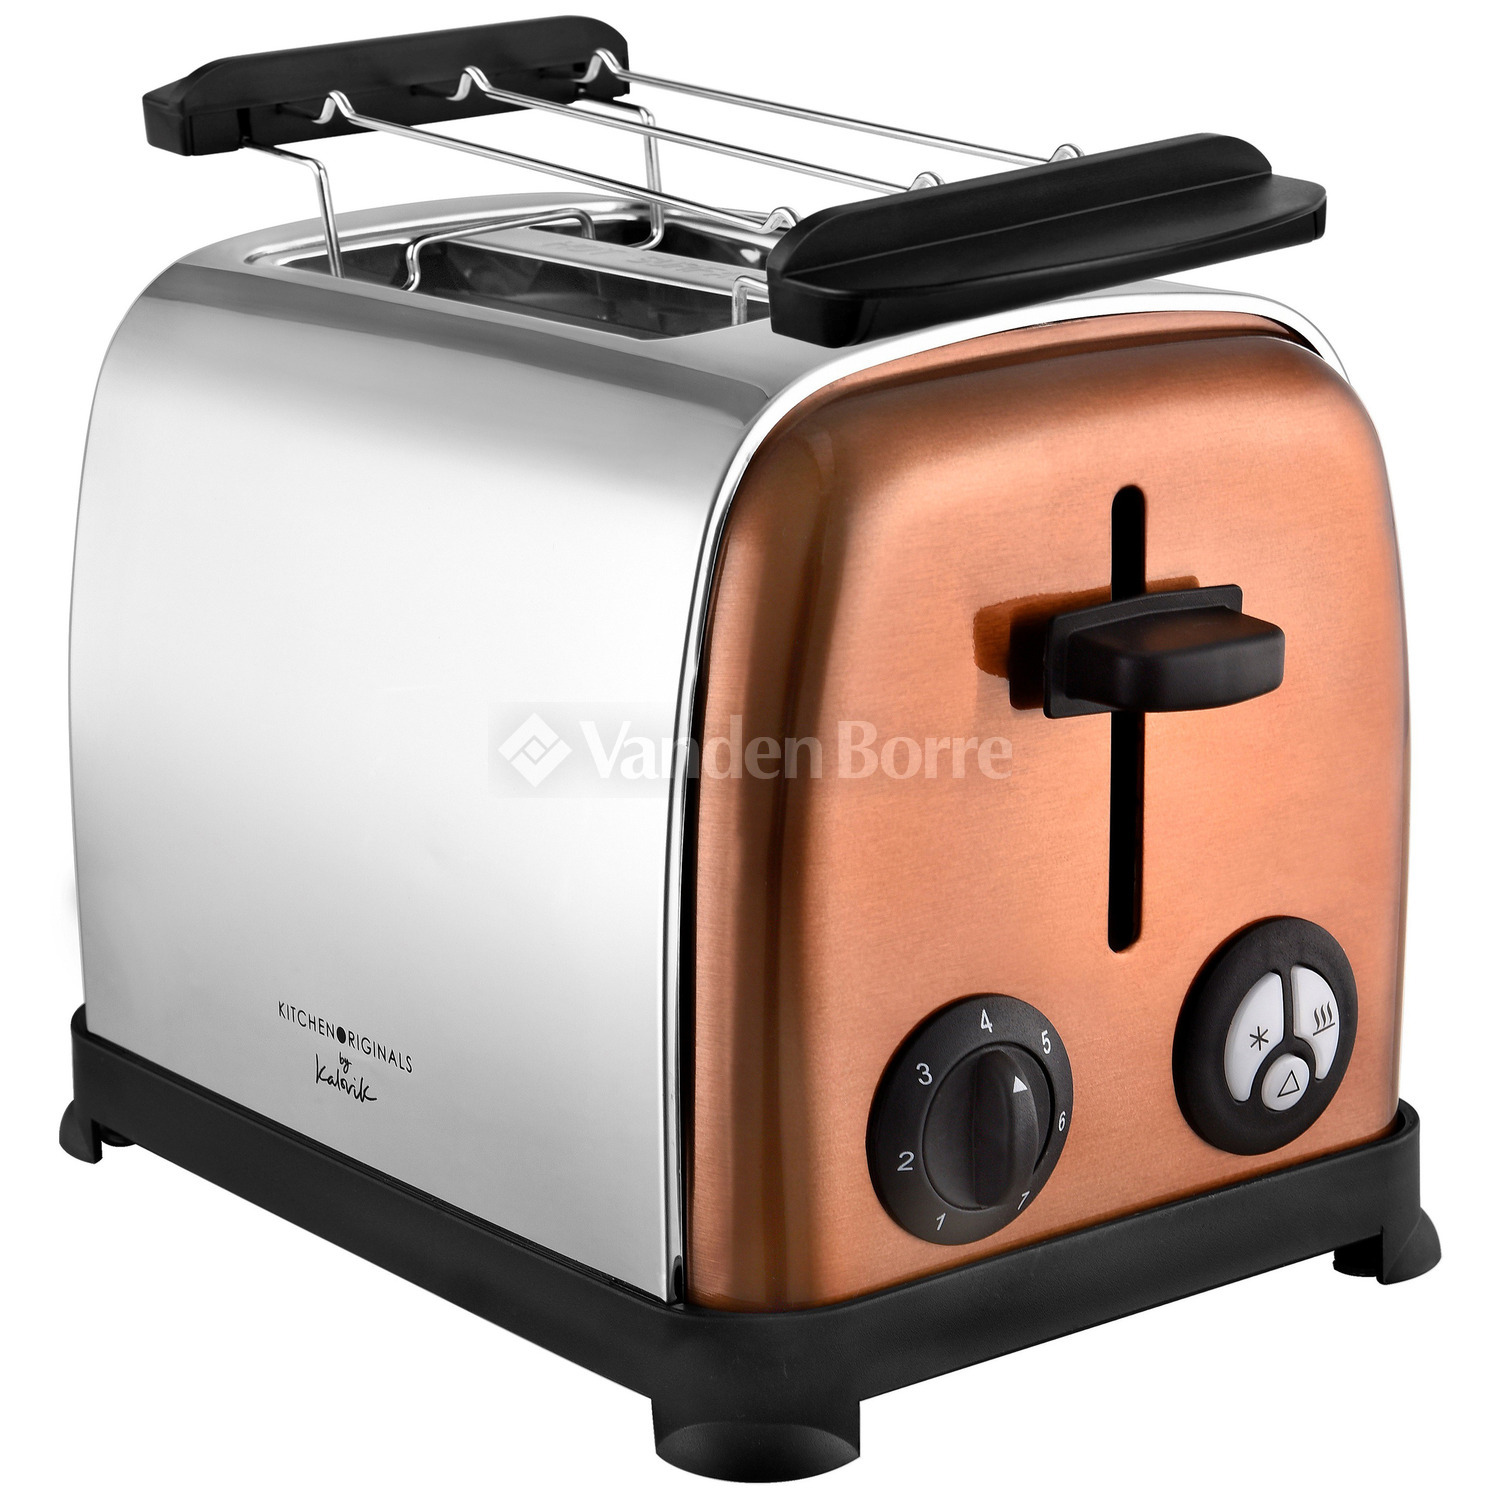 electric name stainless wayfair steel toaster kitchenoriginals by uk kalorik co brand bnd kettle default